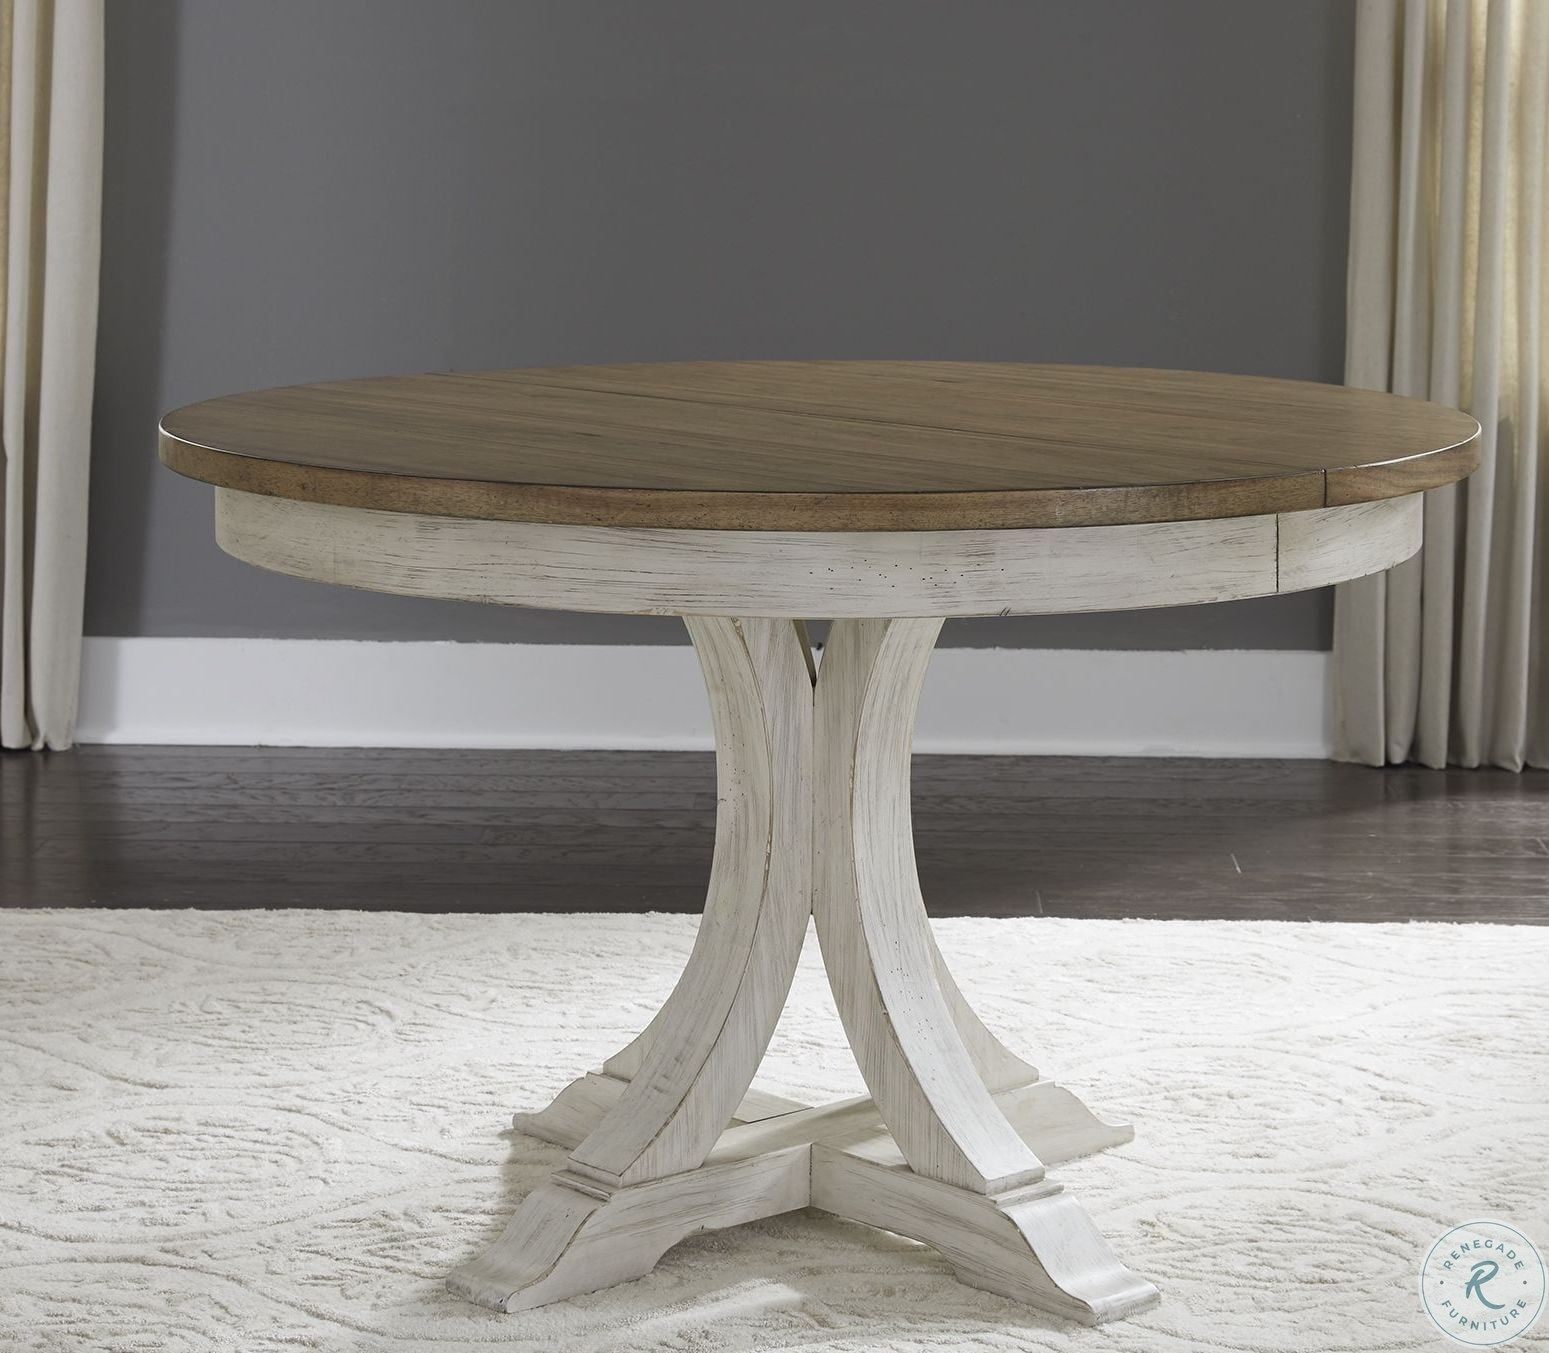 Willow Distressed White Round Counter Height Dining Table Farmhouse Round Dining Table Oval Table Dining Round Dining Room Table